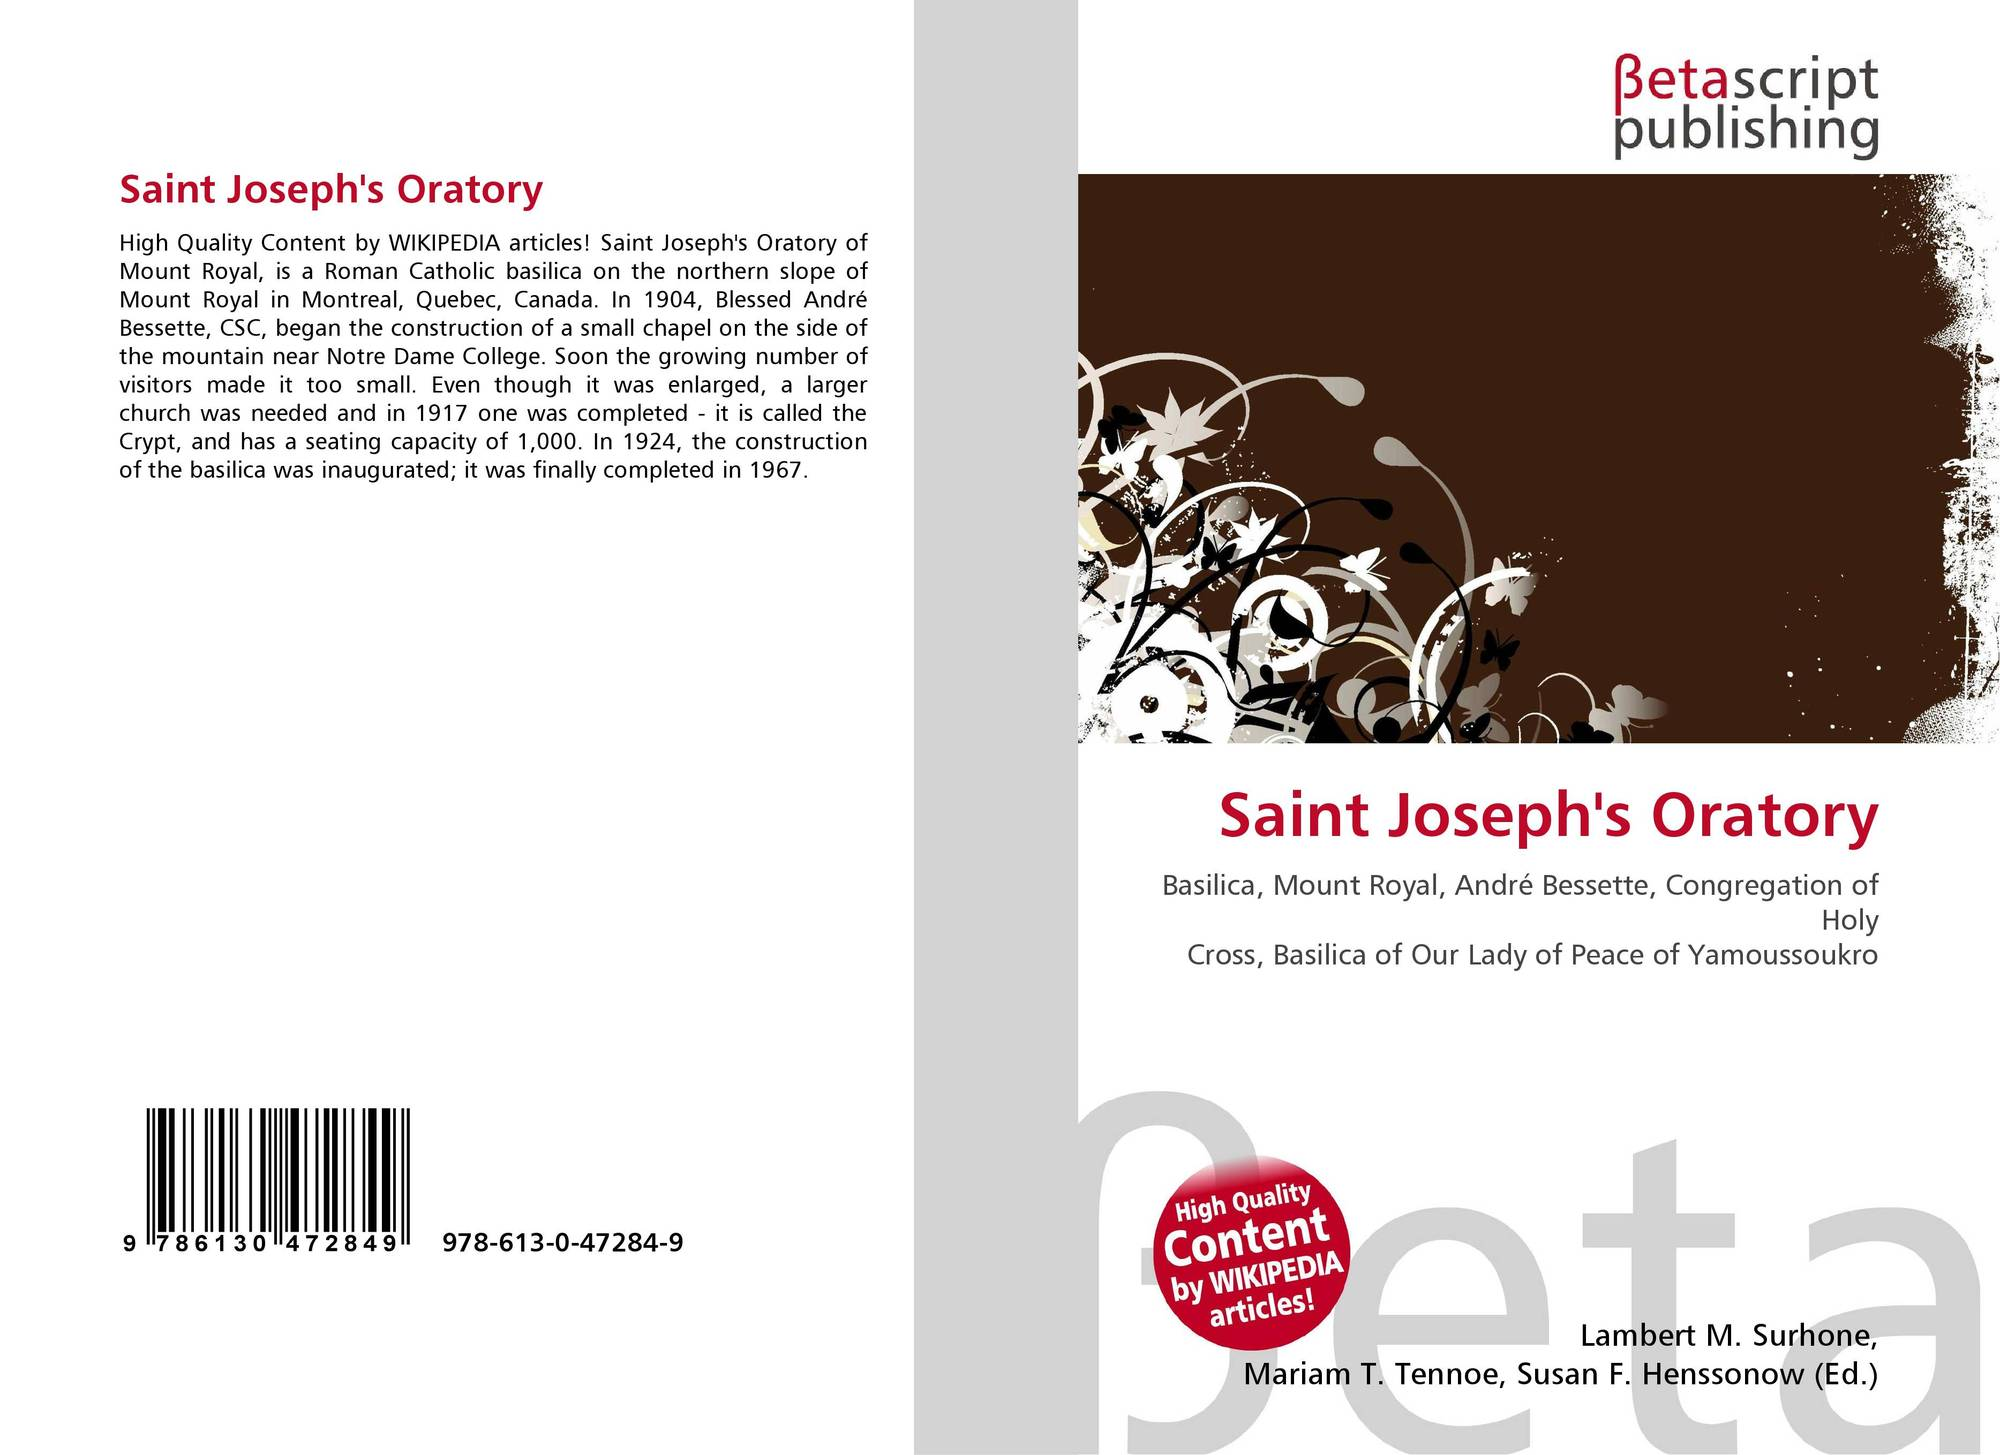 In Search of Bachs Cantabile: The Role and Aspects of Oratory and Singing in Keyboard Interpretation